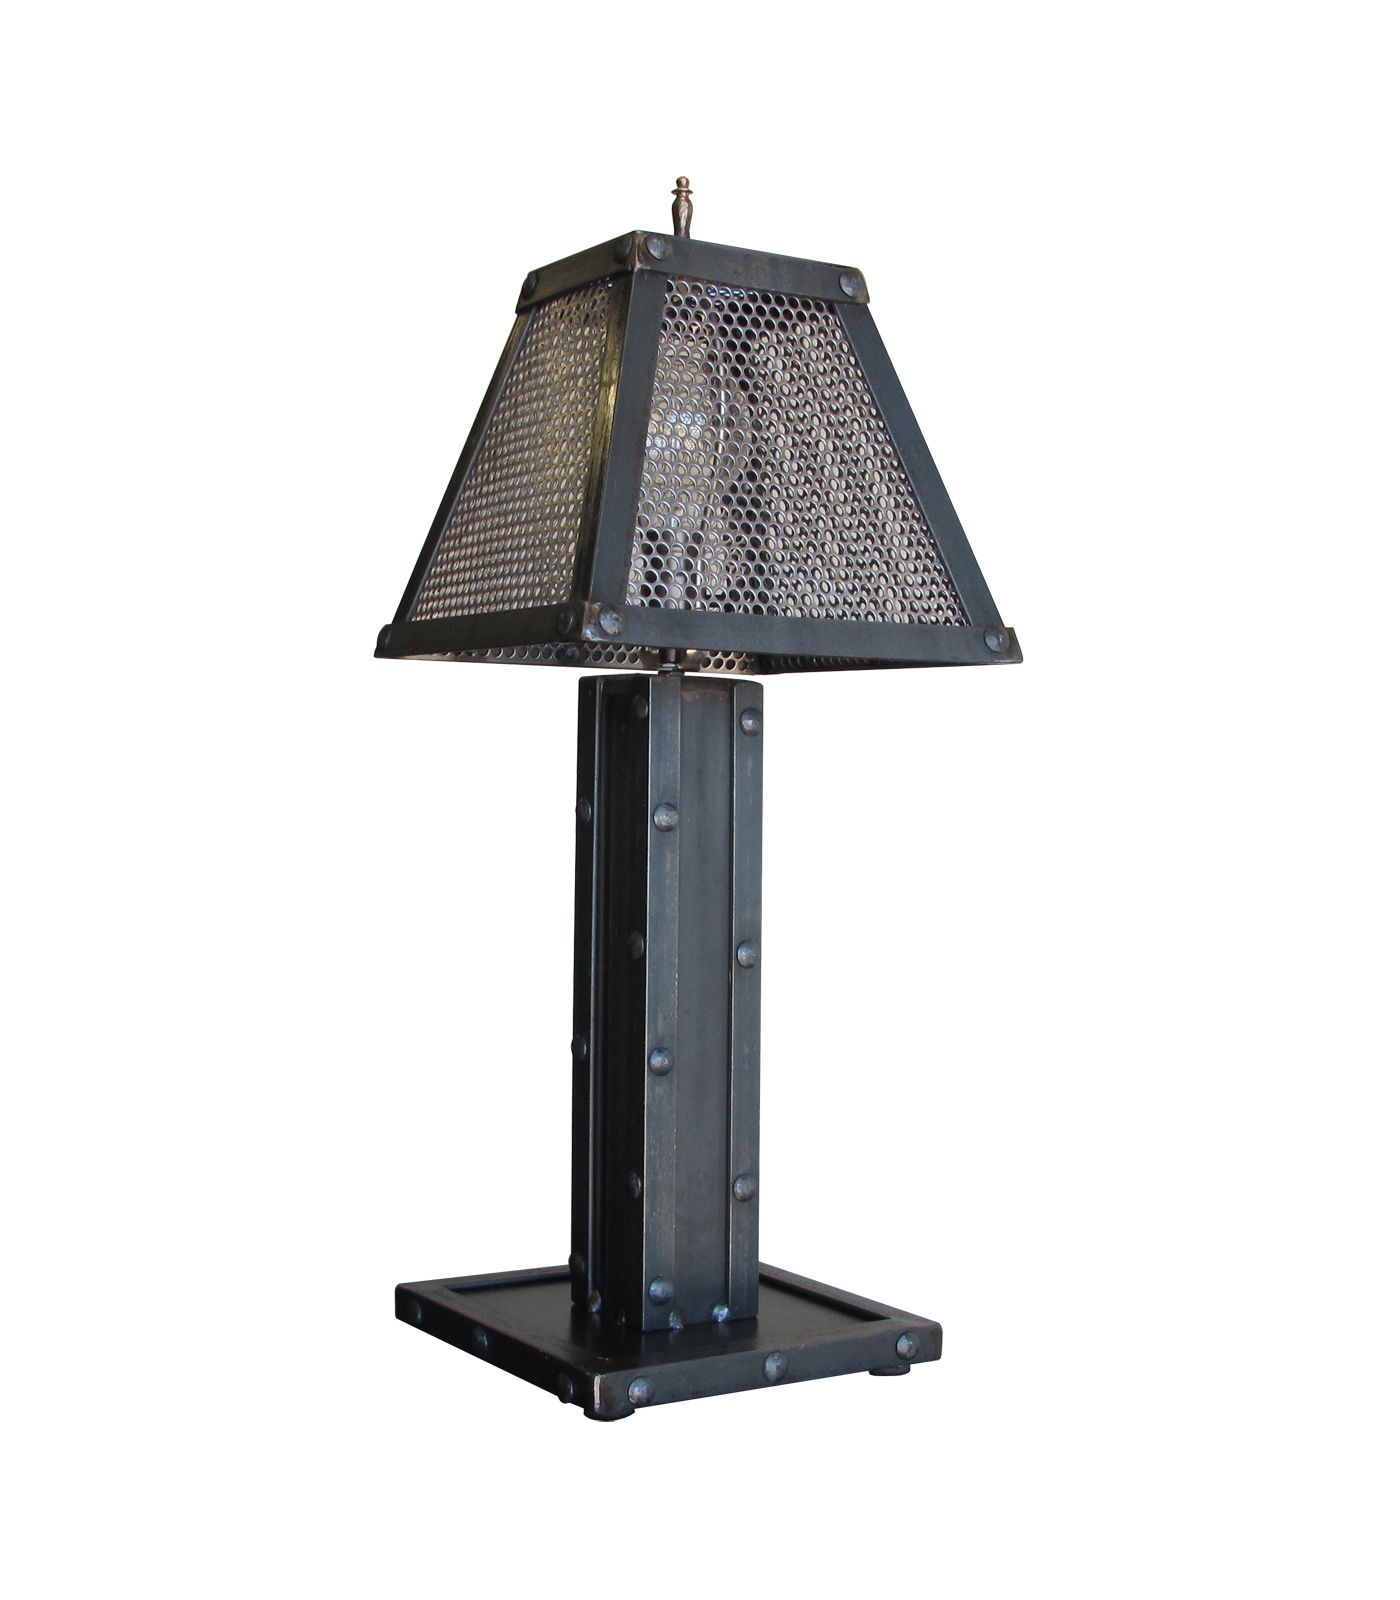 Buy A Custom Vintage Industrial Steel Rivet Design Desk Table Lamp